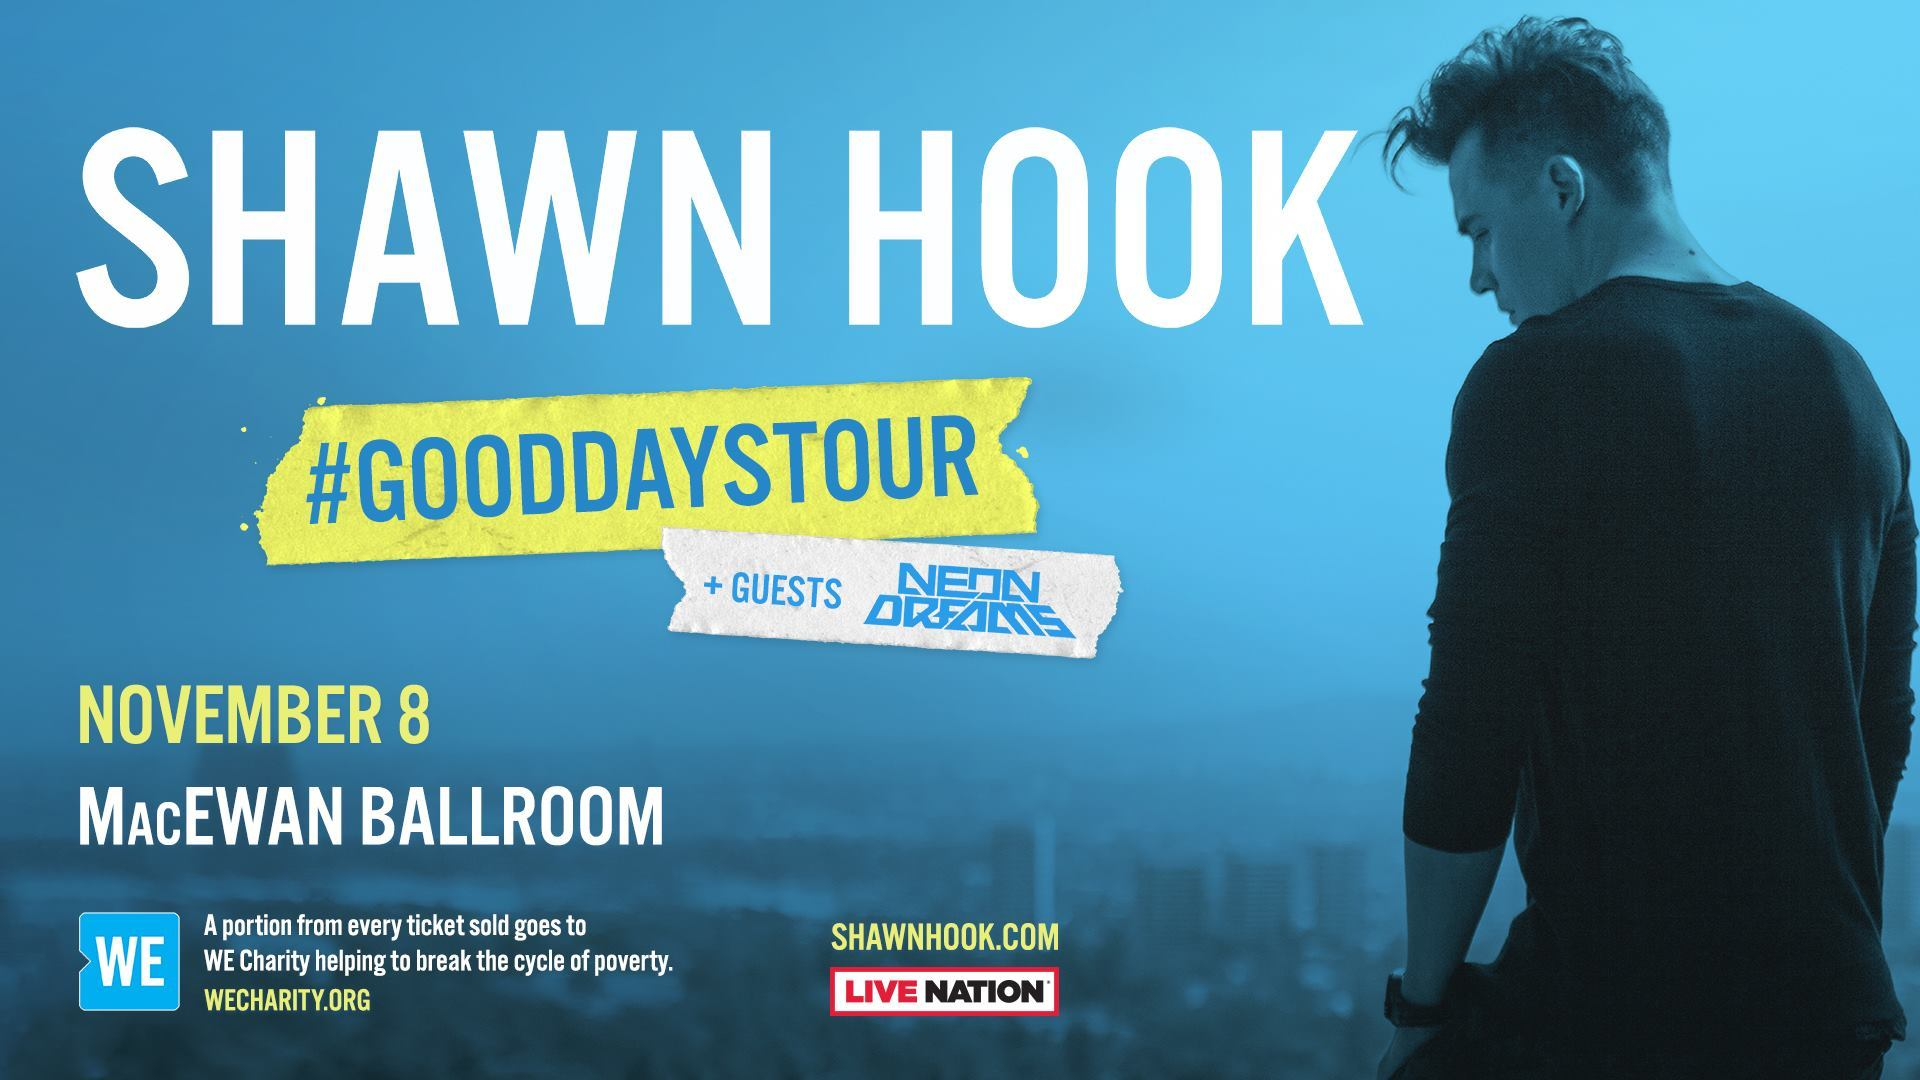 Shawn Hook with guests Neon Dreams